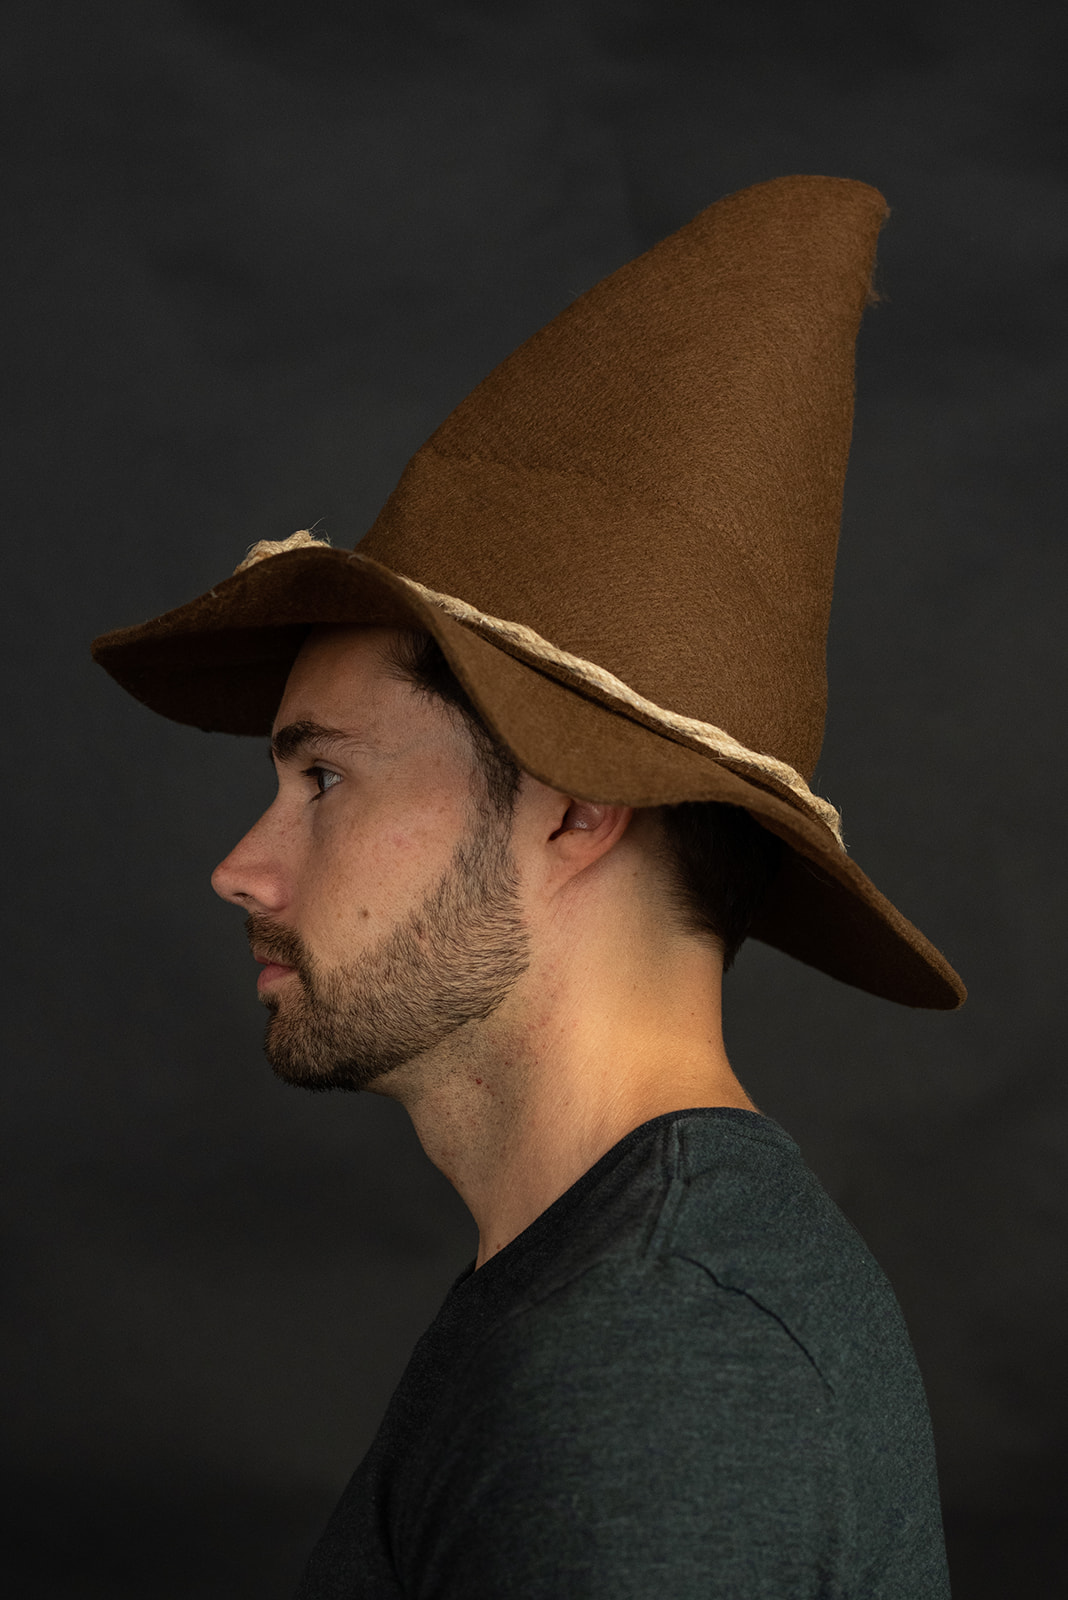 thumbnail 11 - Adult Scarecrow Hat Deluxe Felt Oktoberfest Wizard Witch Hillbilly Hat Costume